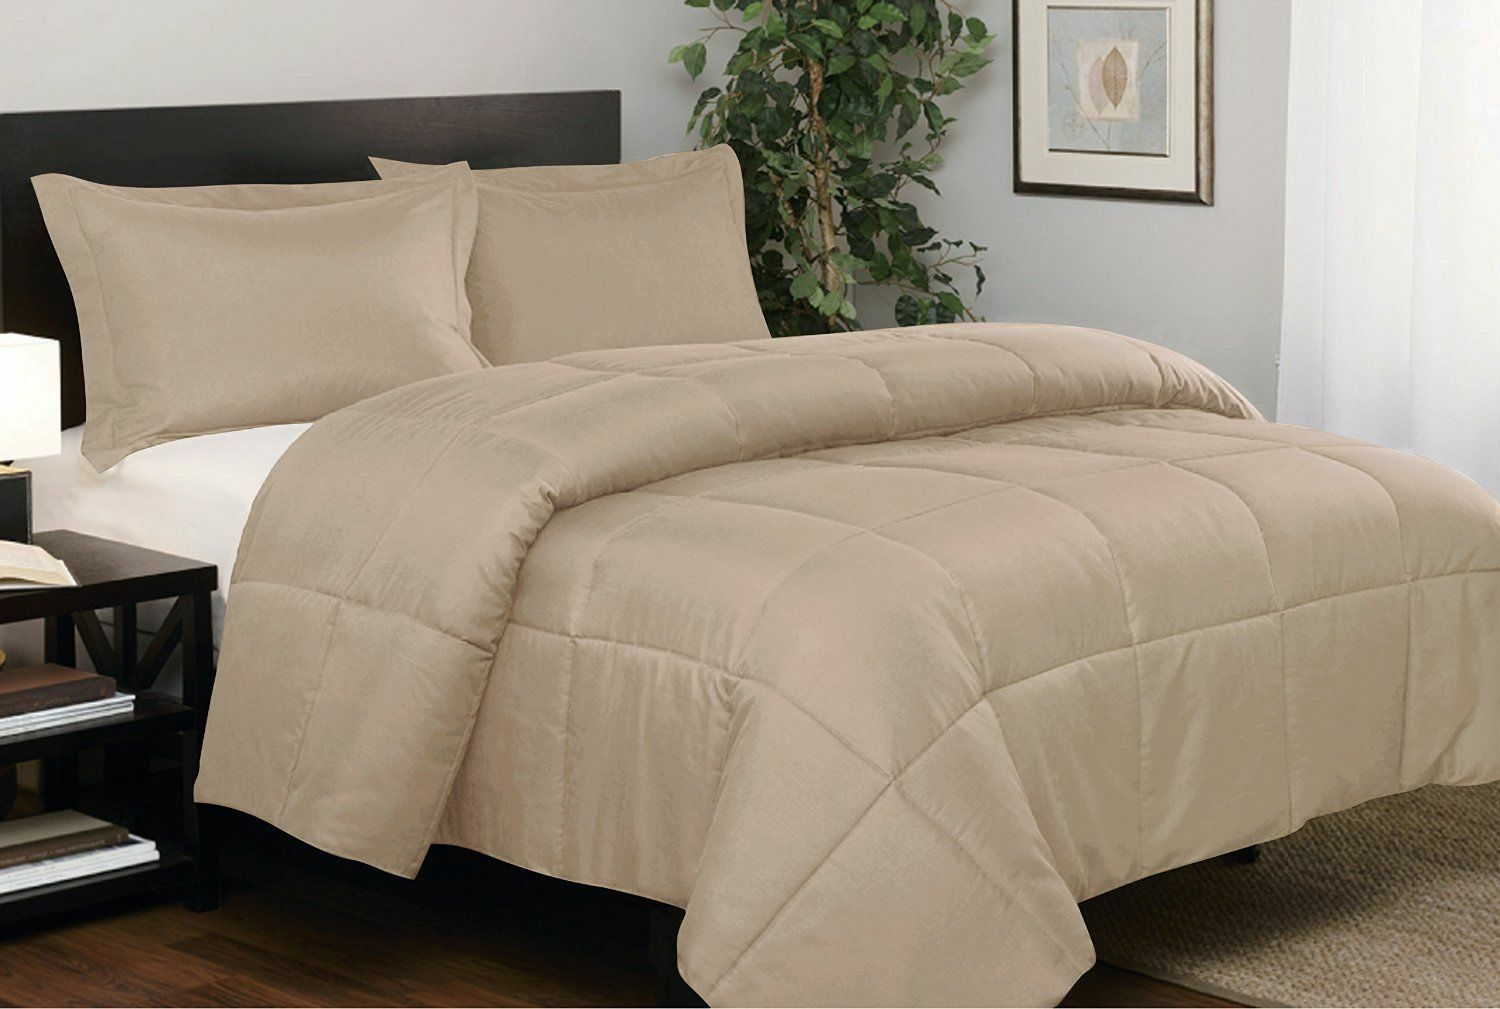 Branded Down Alternative Comforter Egyptian Cotton Taupe Solid US Twin Size